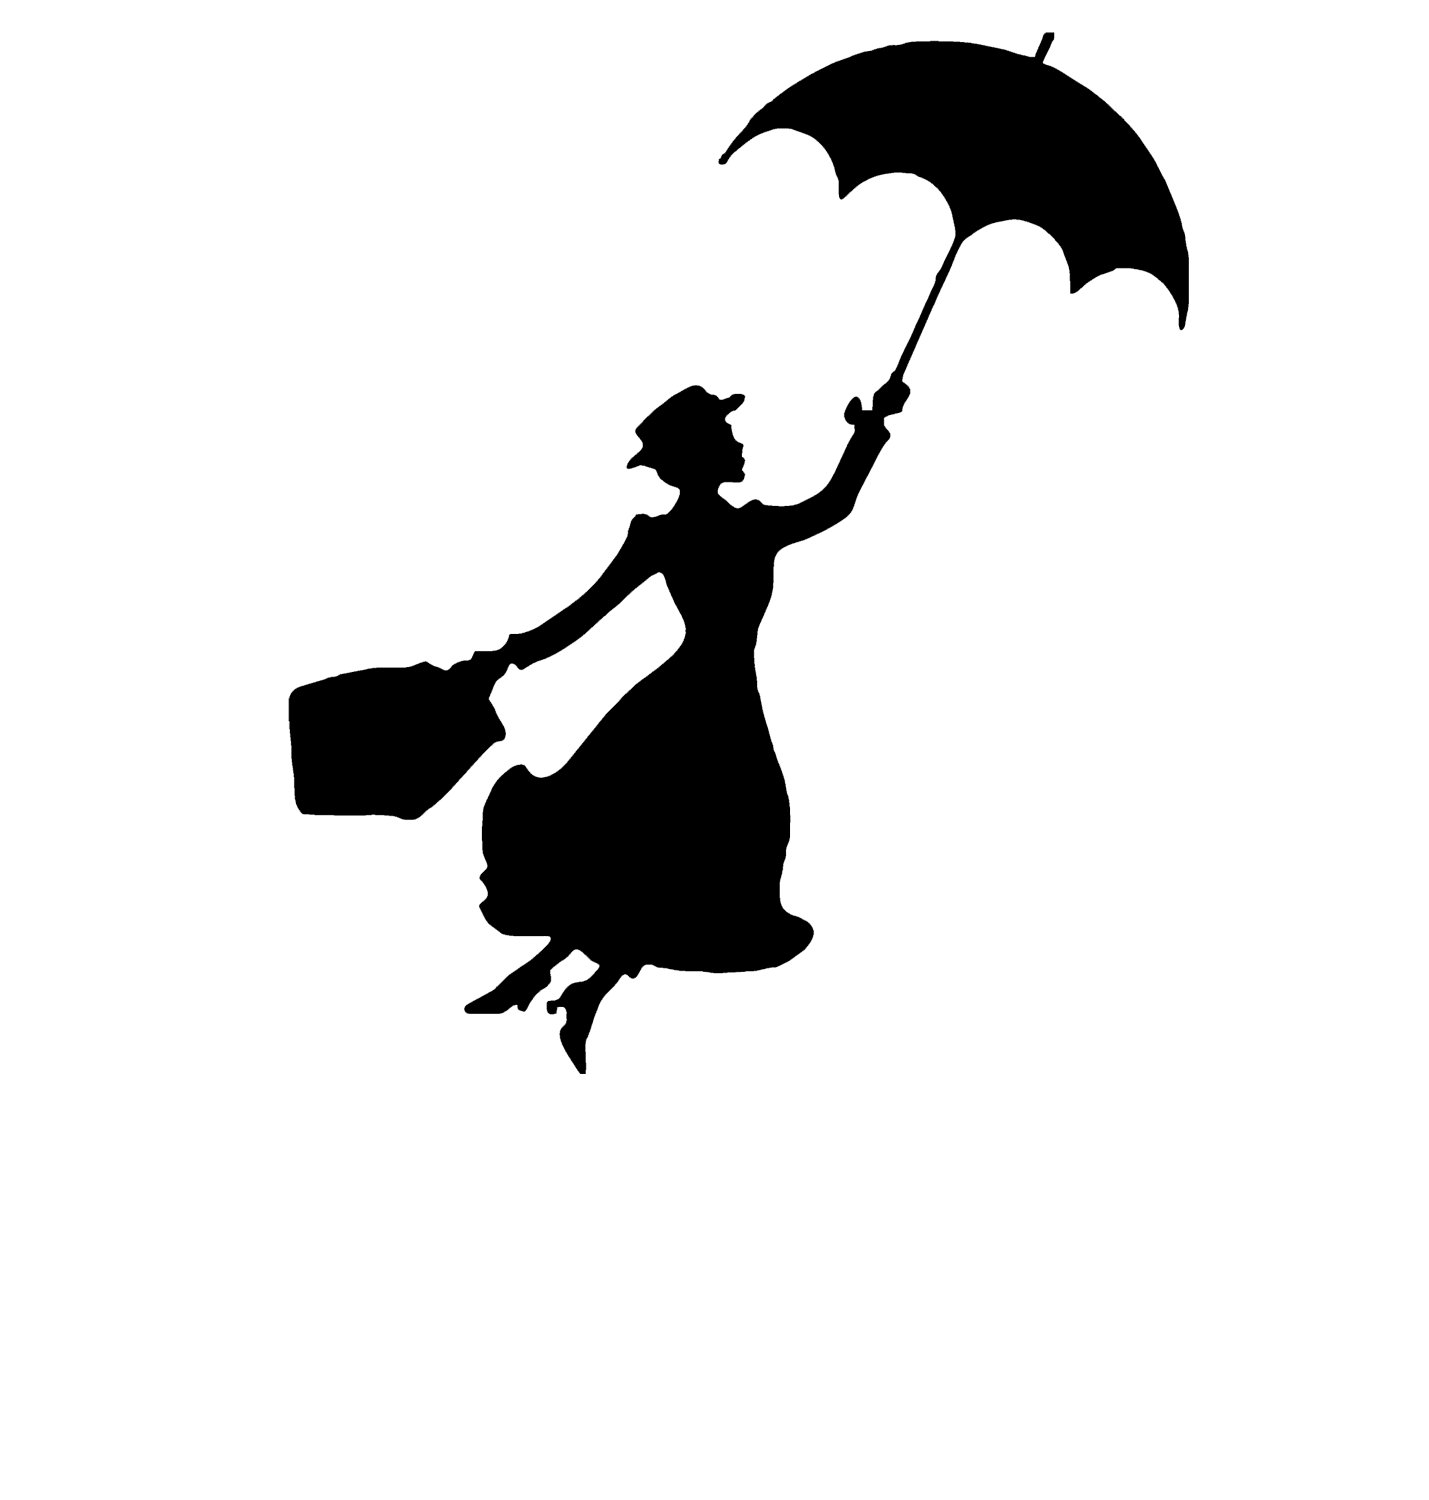 Skyline clipart mary poppins. Silhouette images at getdrawings